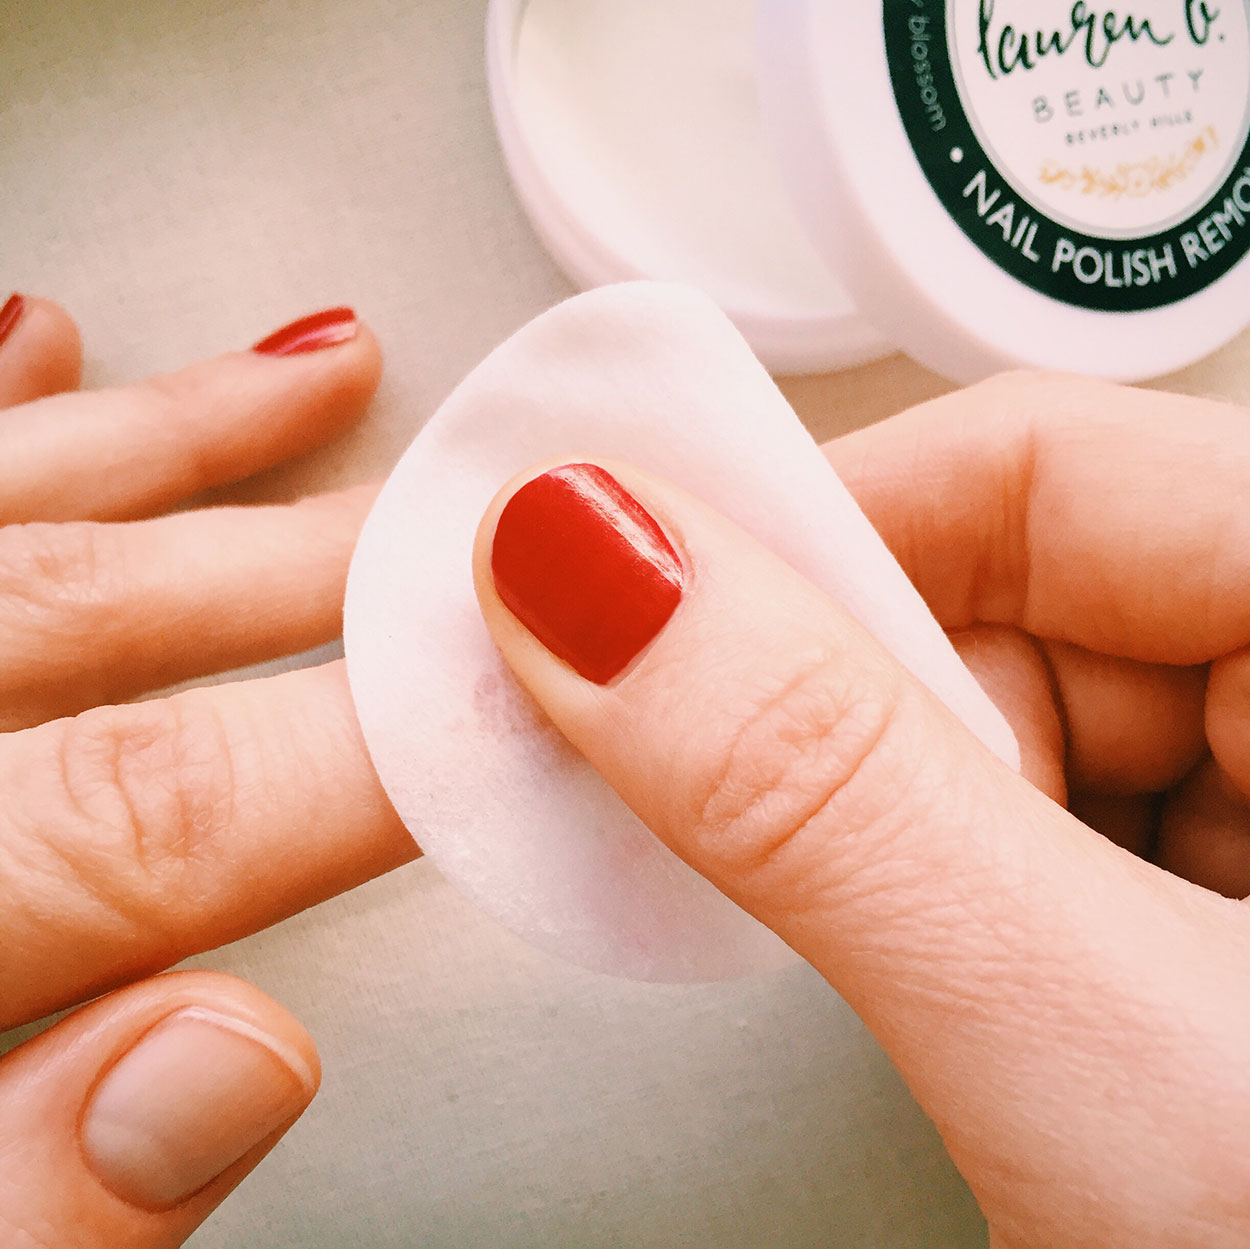 Nail Polish Remover Pads By Lauren B Beauty